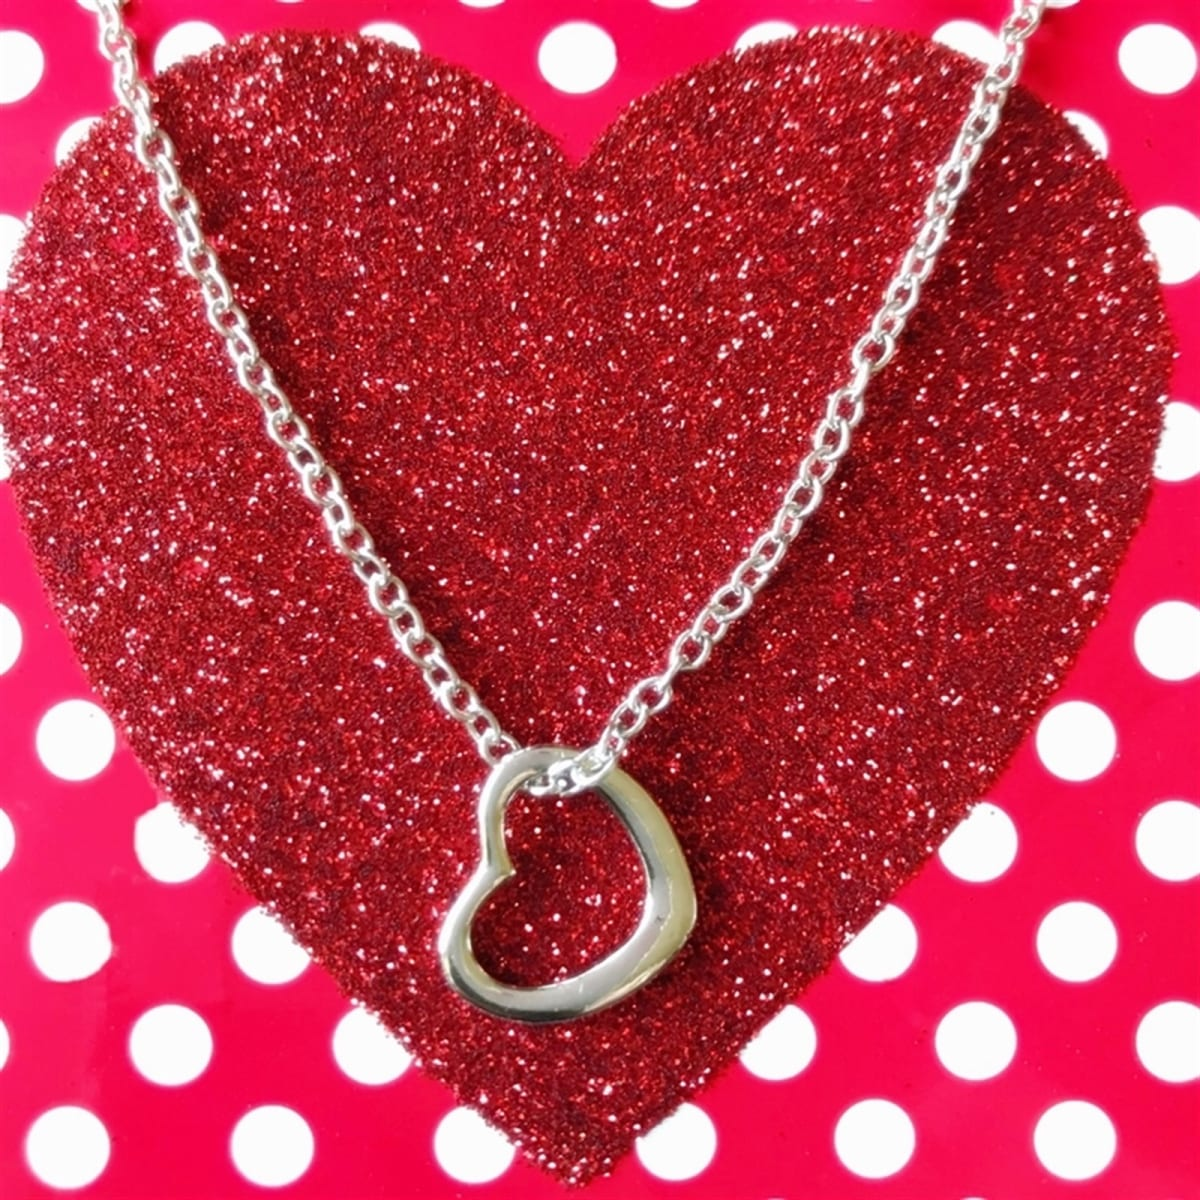 Silver Open Heart Necklace Just $6.99 + FREE Shipping!